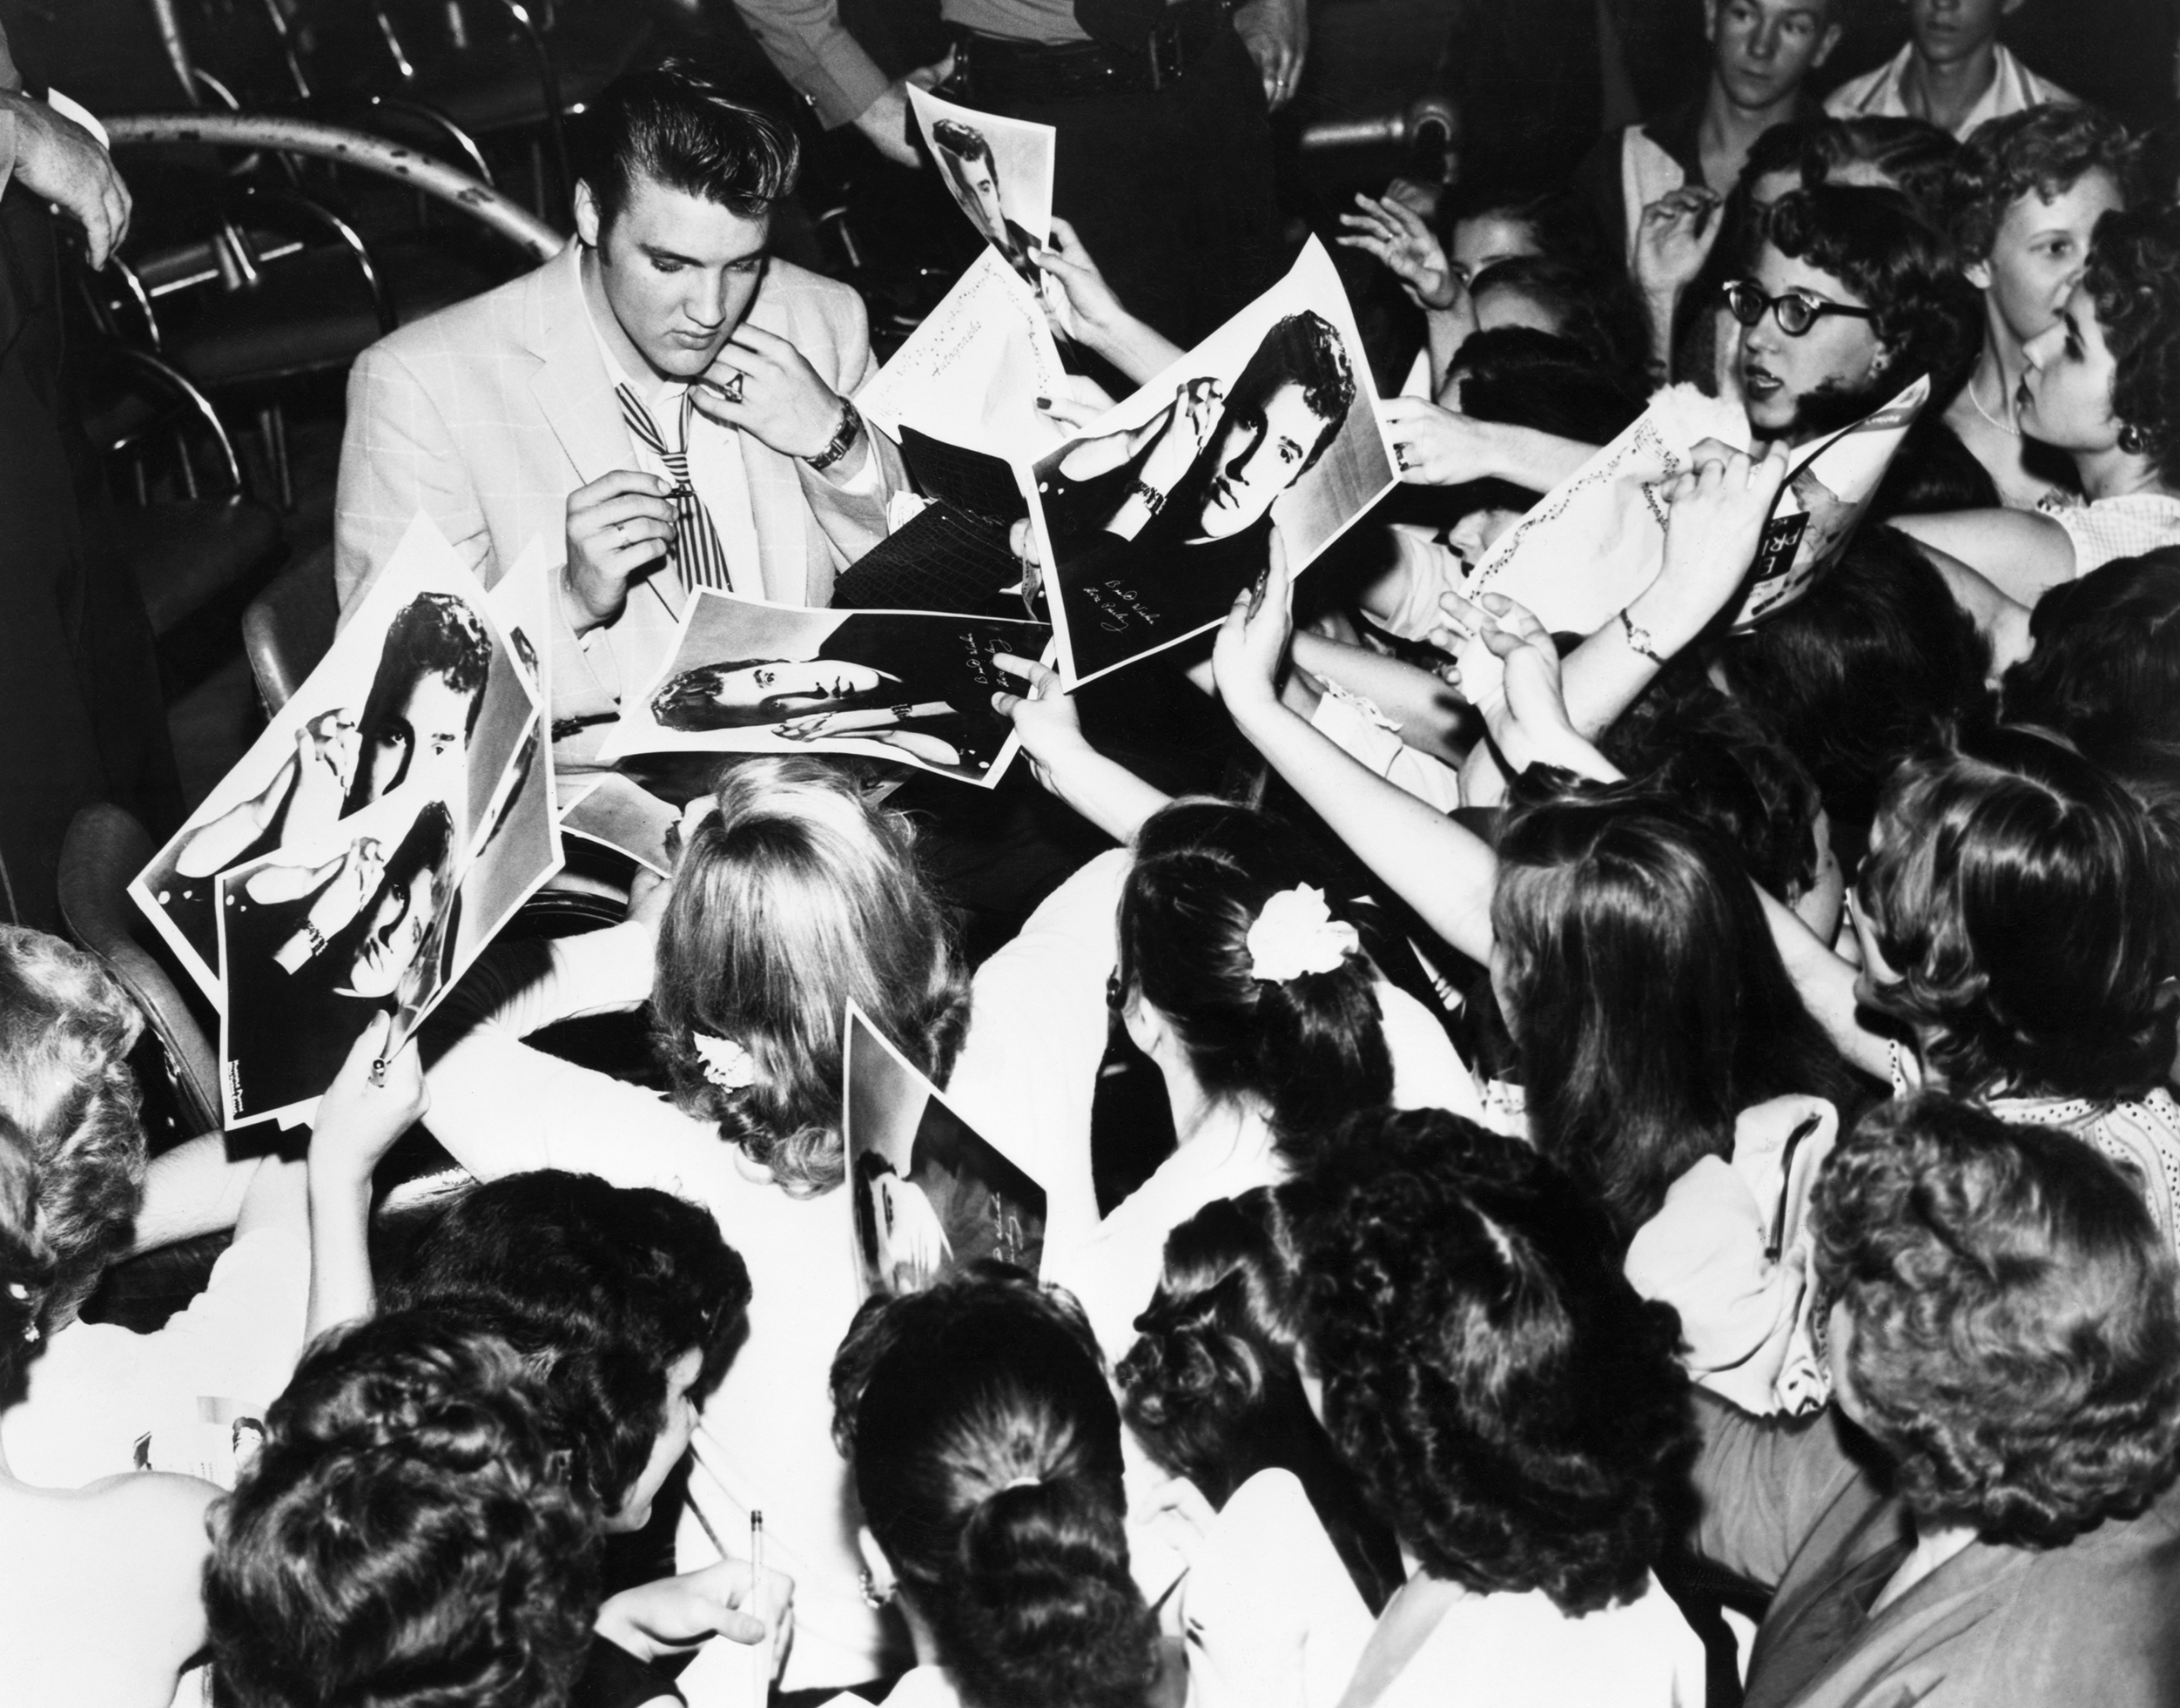 Elvis is surrounded by his enthusiastic teenage fans in Houston, TX., 1956.